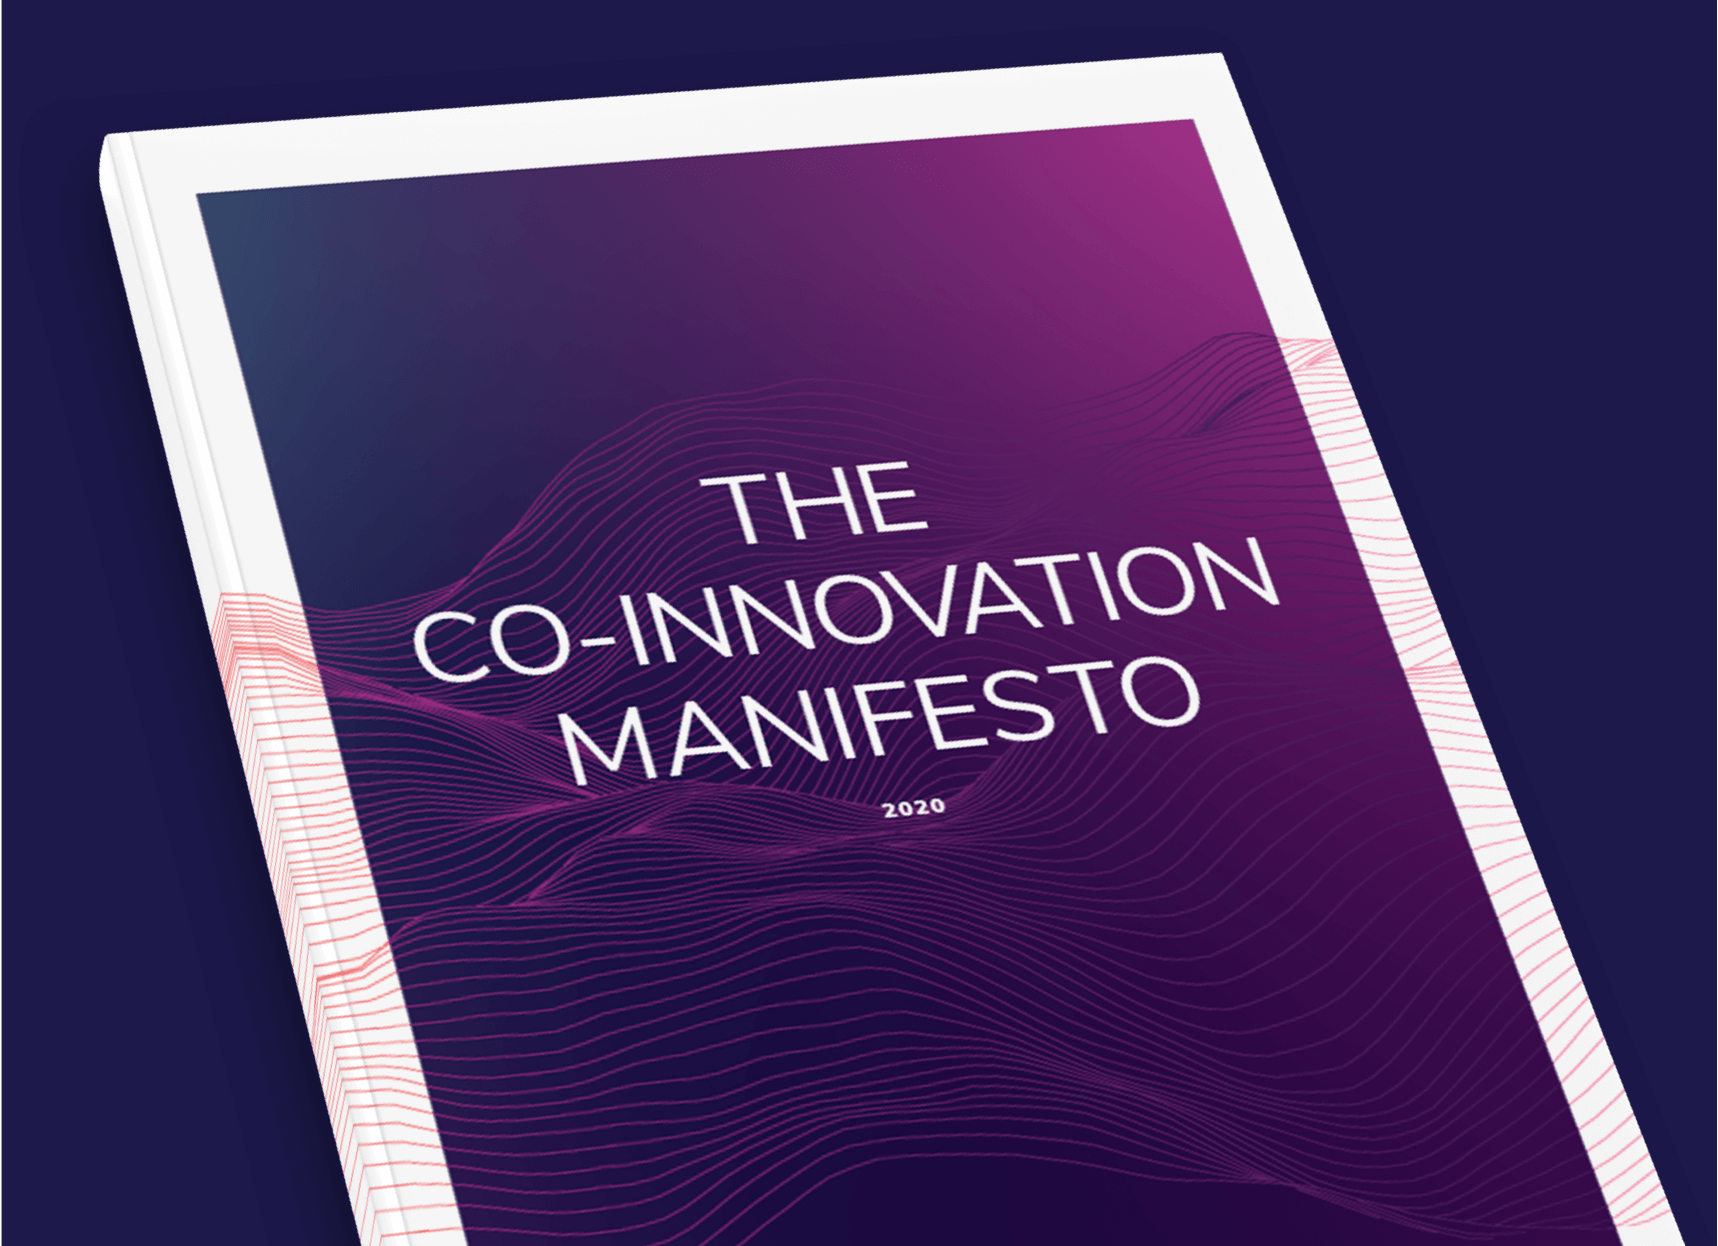 Co-Innovation Manifesto Cover